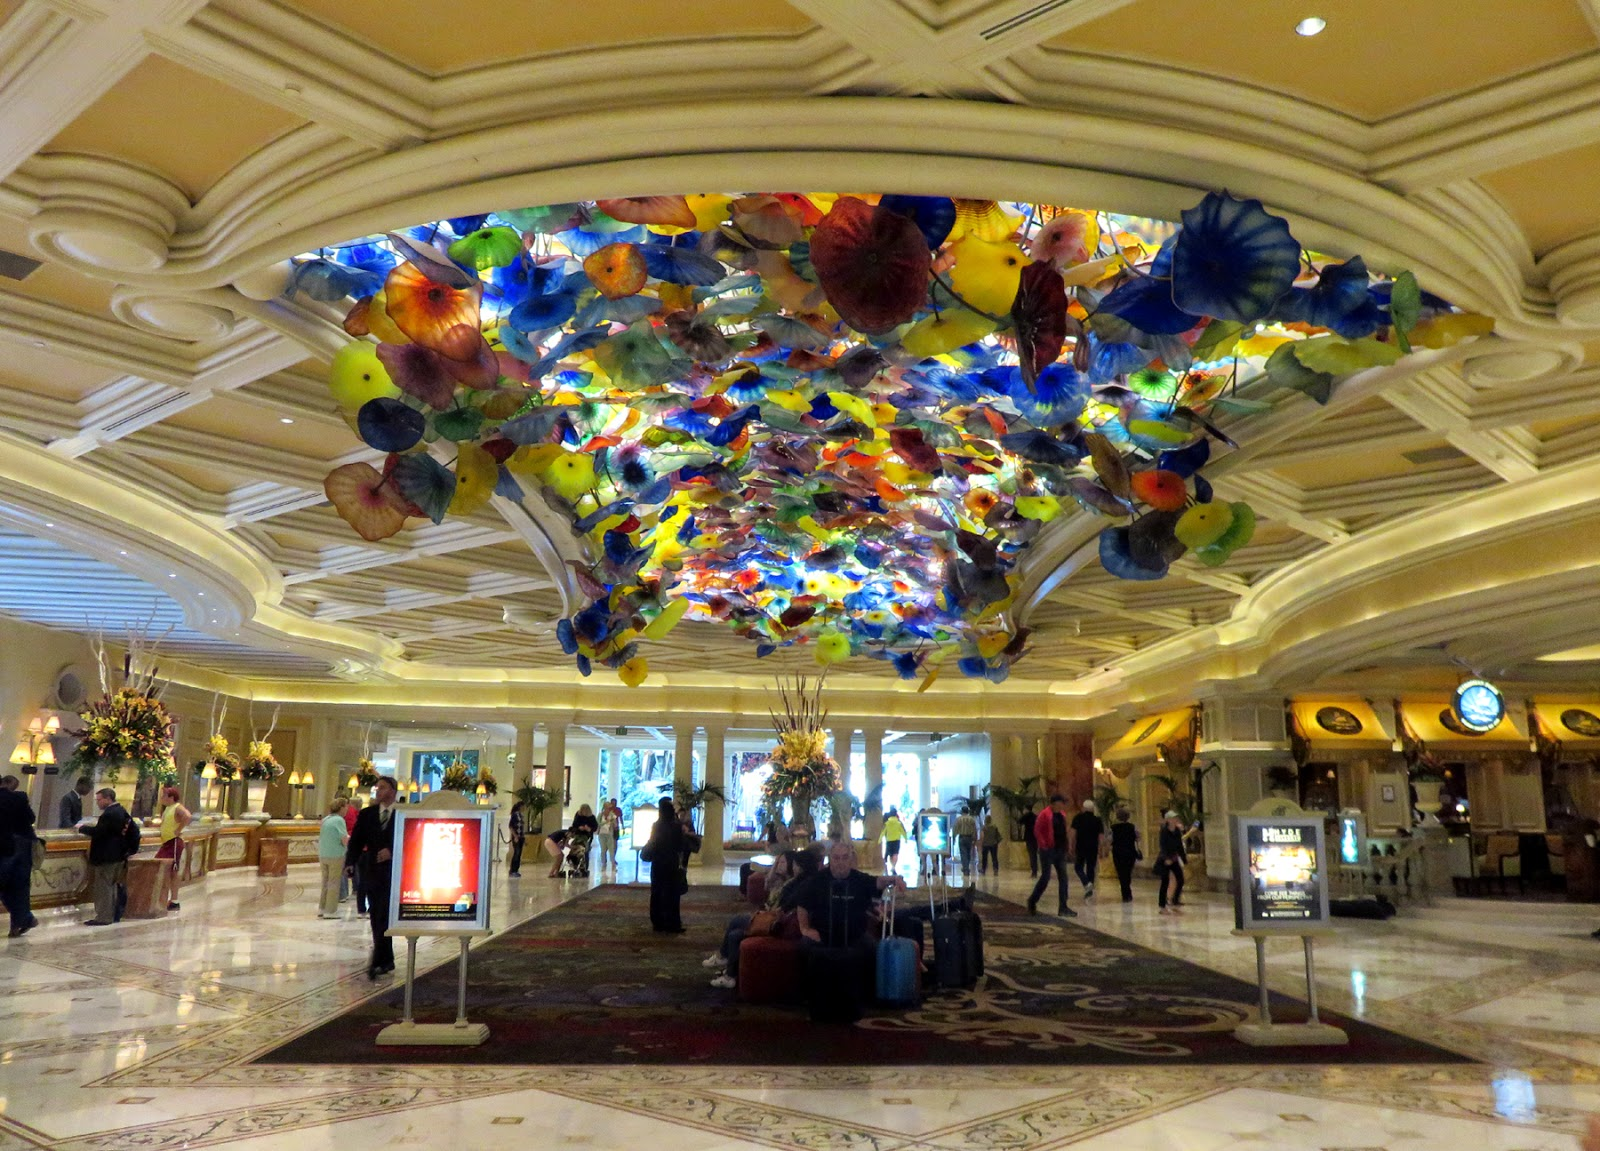 Chihuly chandelier bellagio images chihuly chandelier bellagio dale chihuly chandelier in dale chihuly chandelier in source abuse report arubaitofo Choice Image